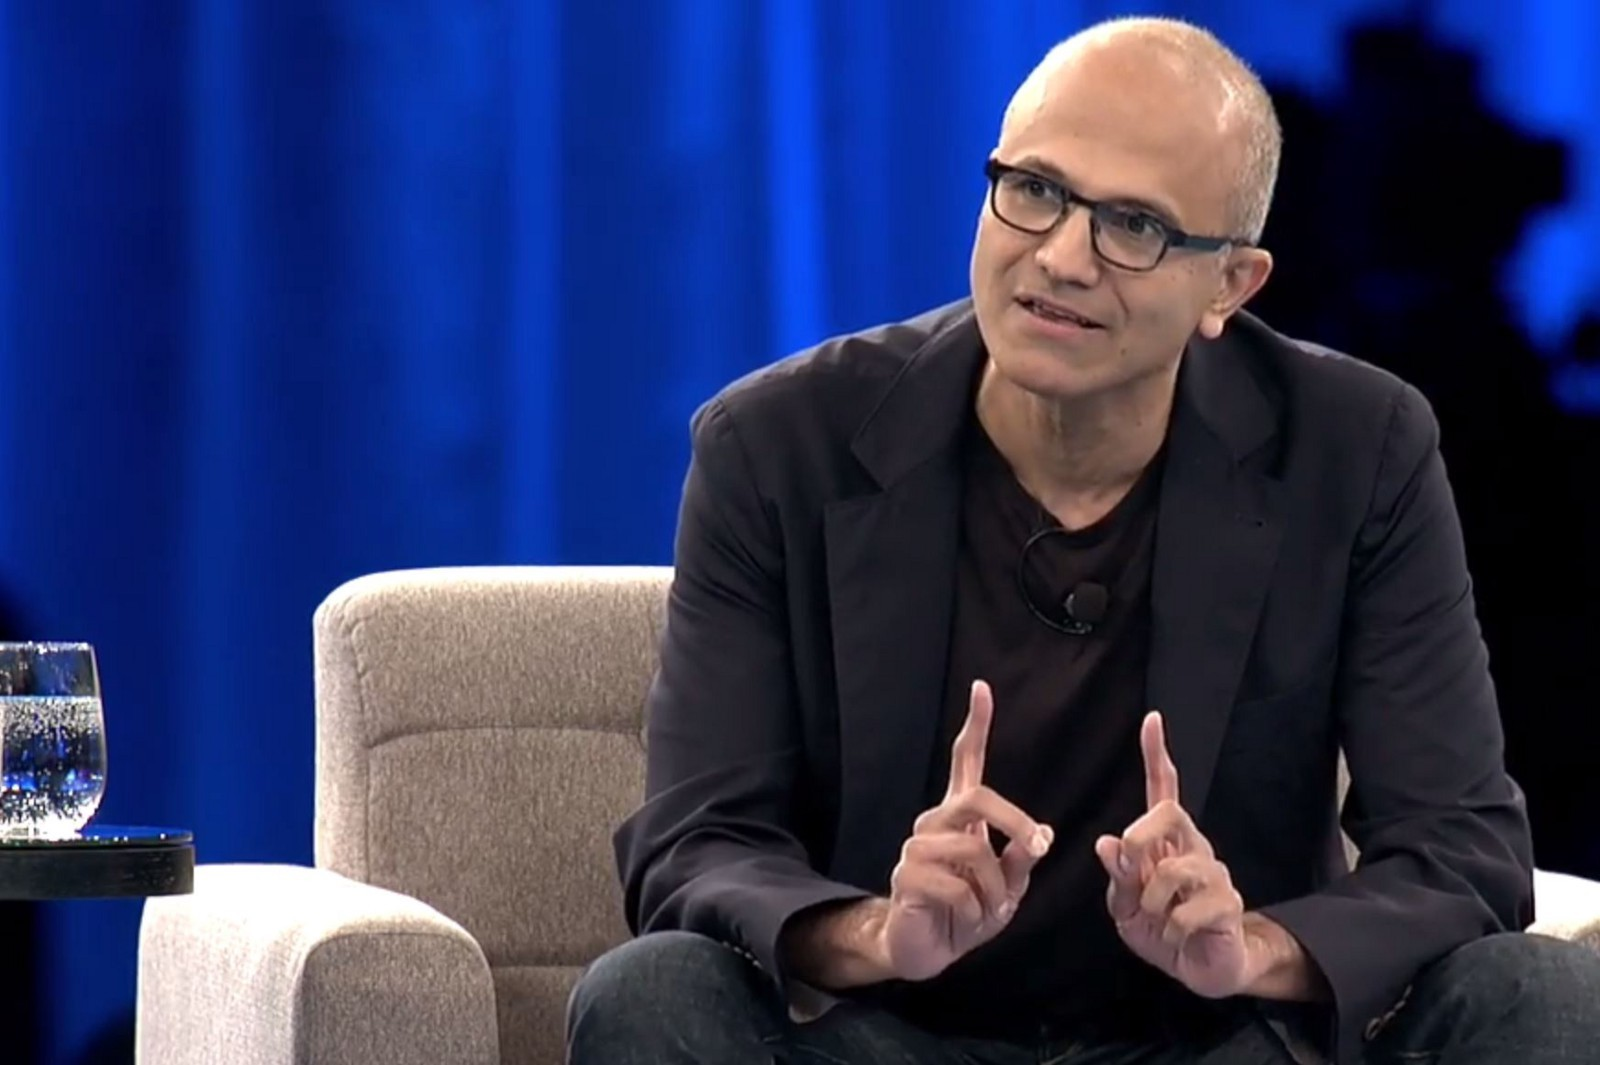 microsoft-ceo-highlights-his-favorite-android-apps-522068-2